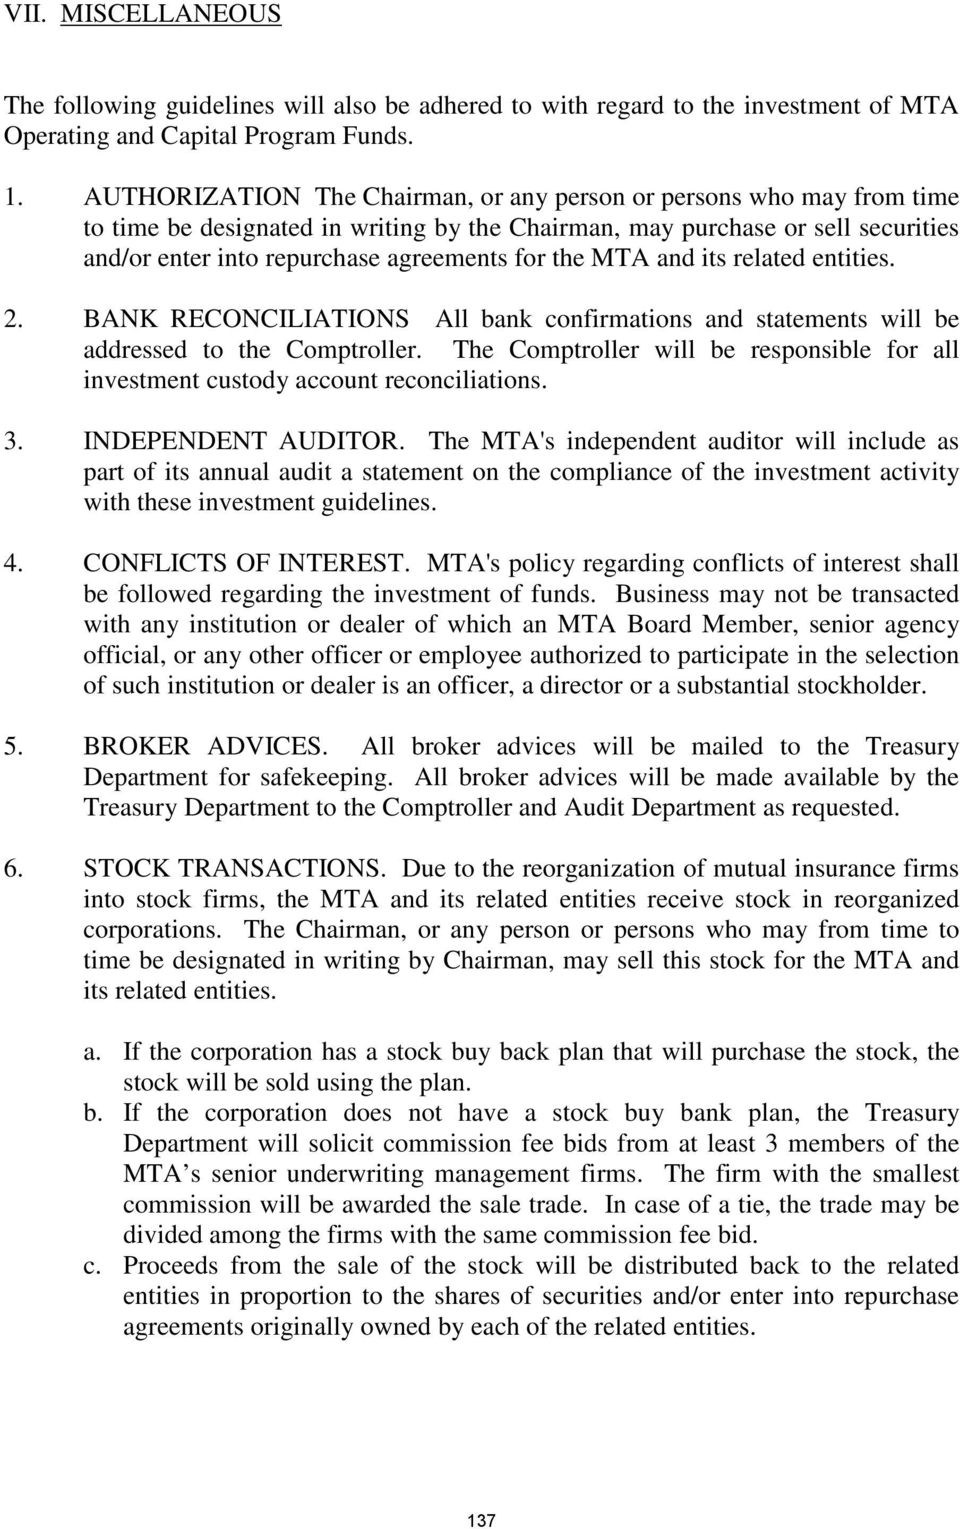 the MTA and its related entities. 2. BANK RECONCILIATIONS All bank confirmations and statements will be addressed to the Comptroller.